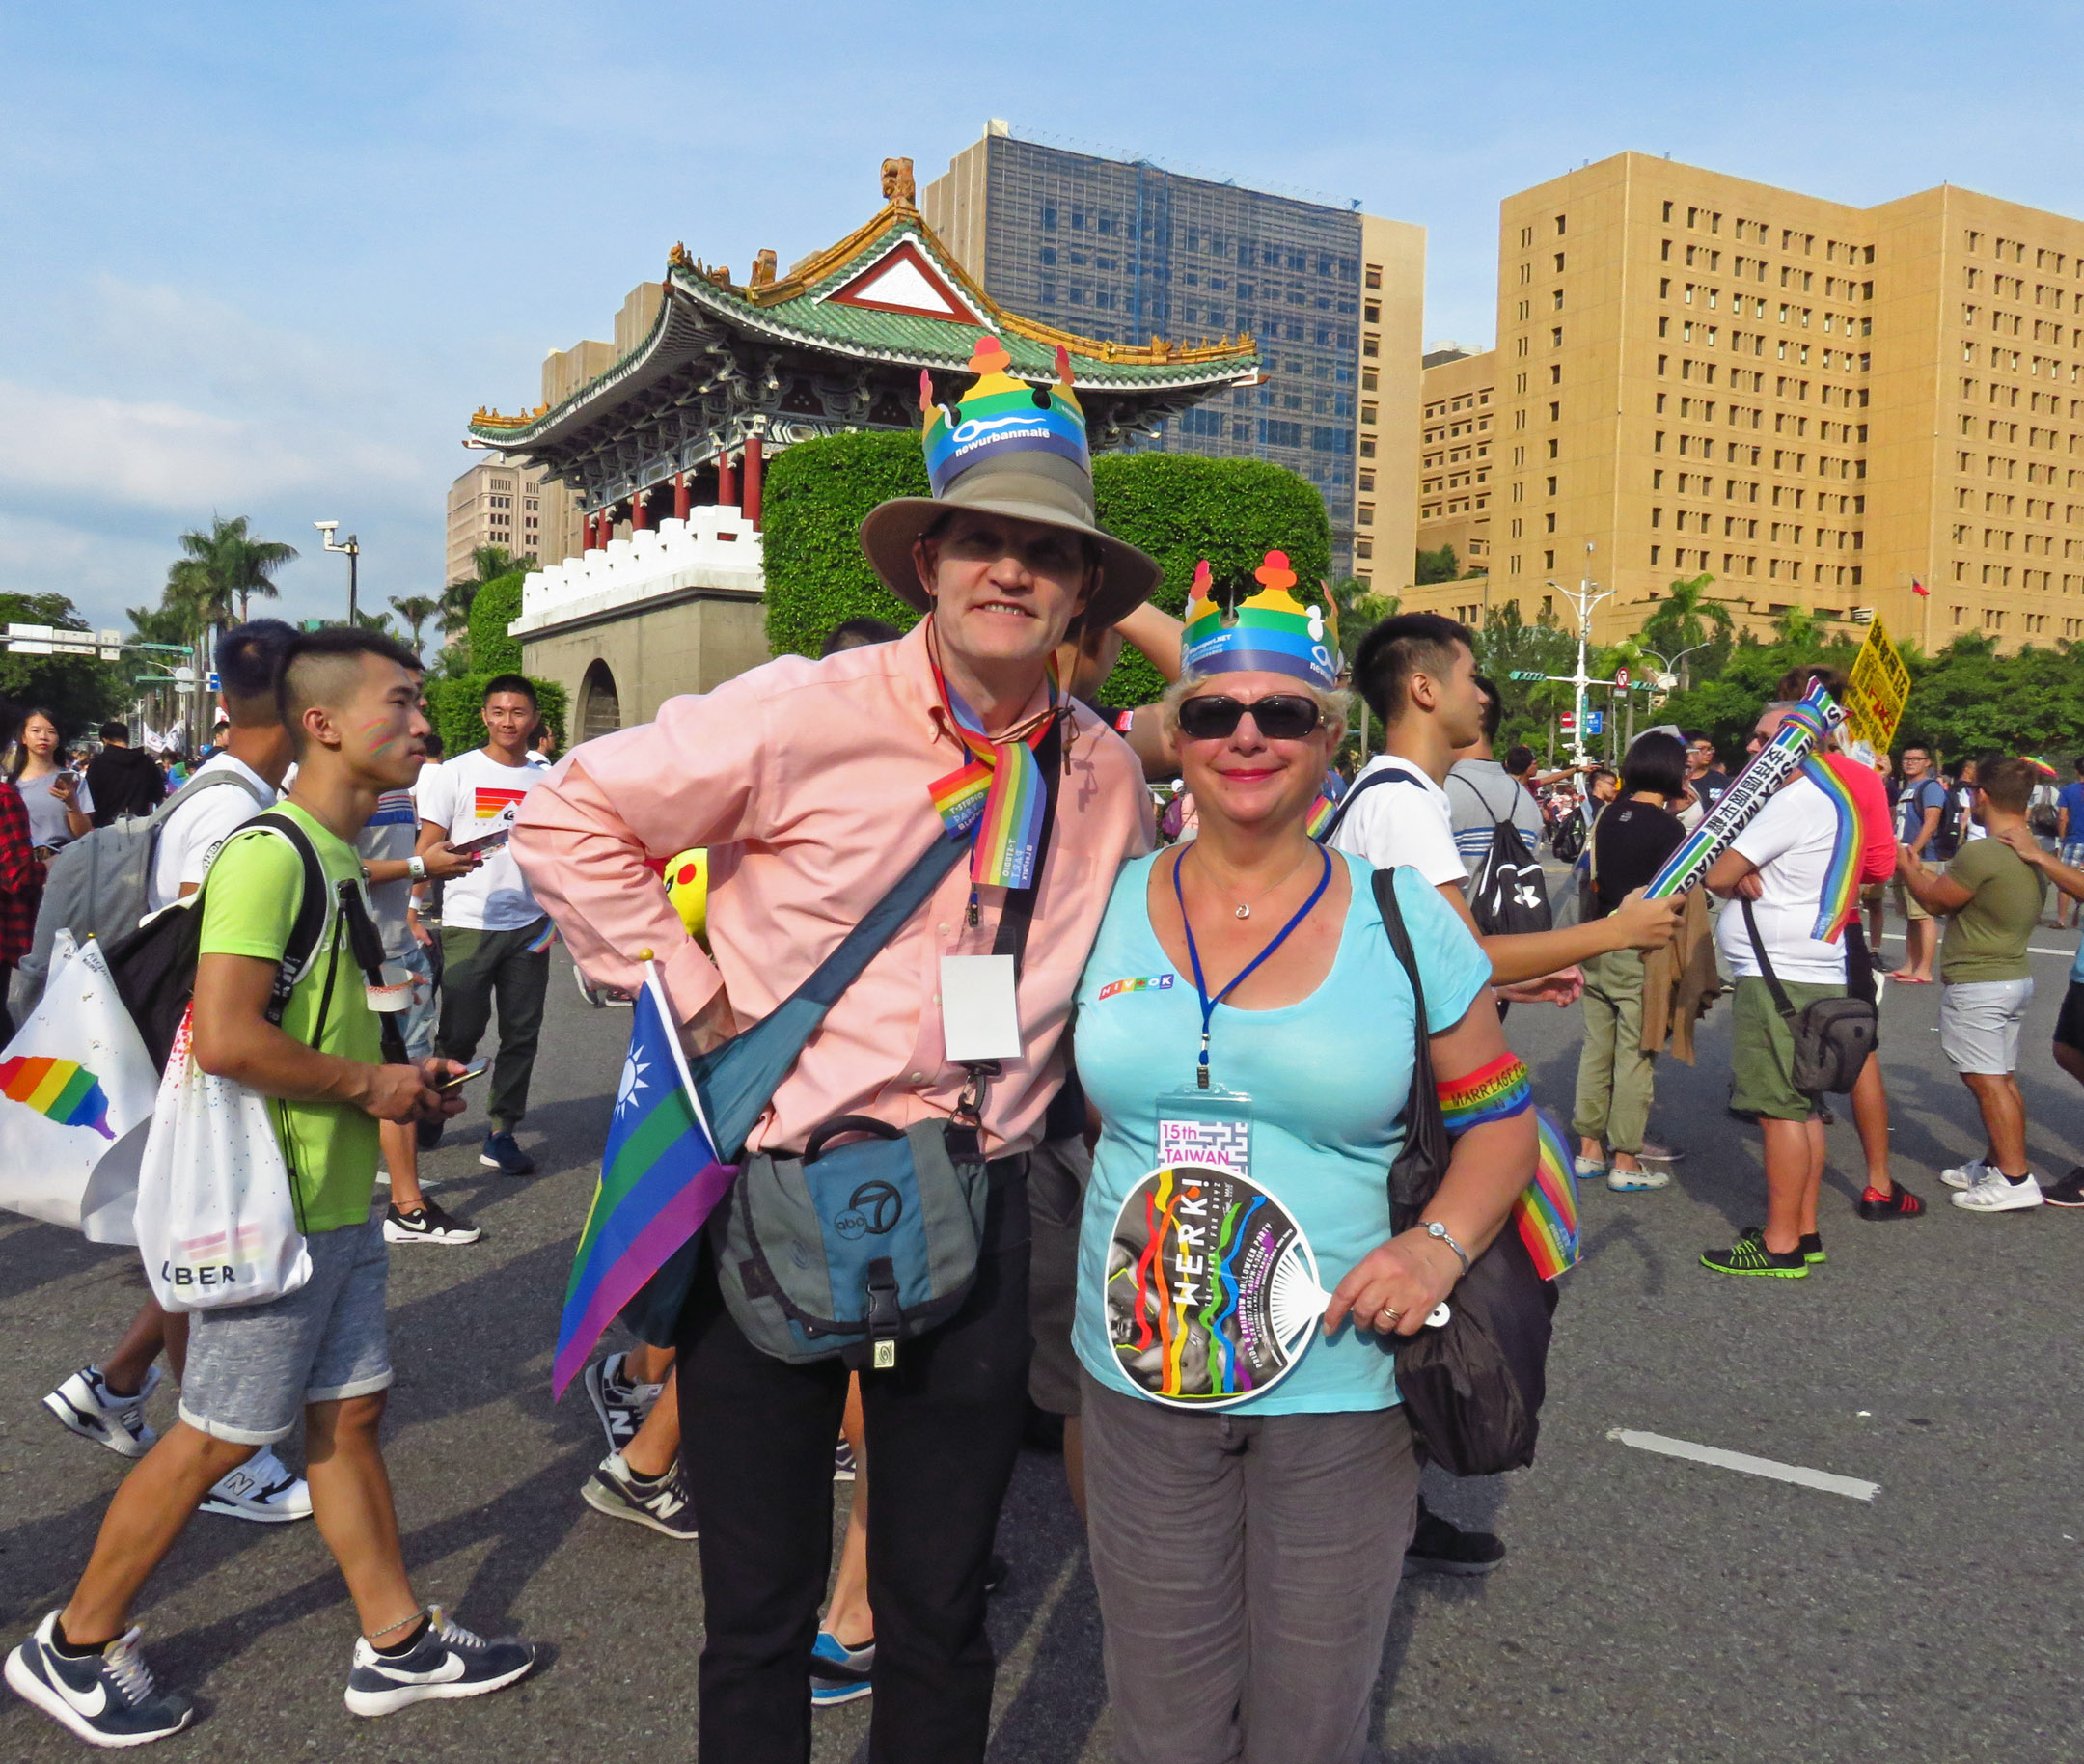 2. Ed and Emma at the Pride Parade in Taipei